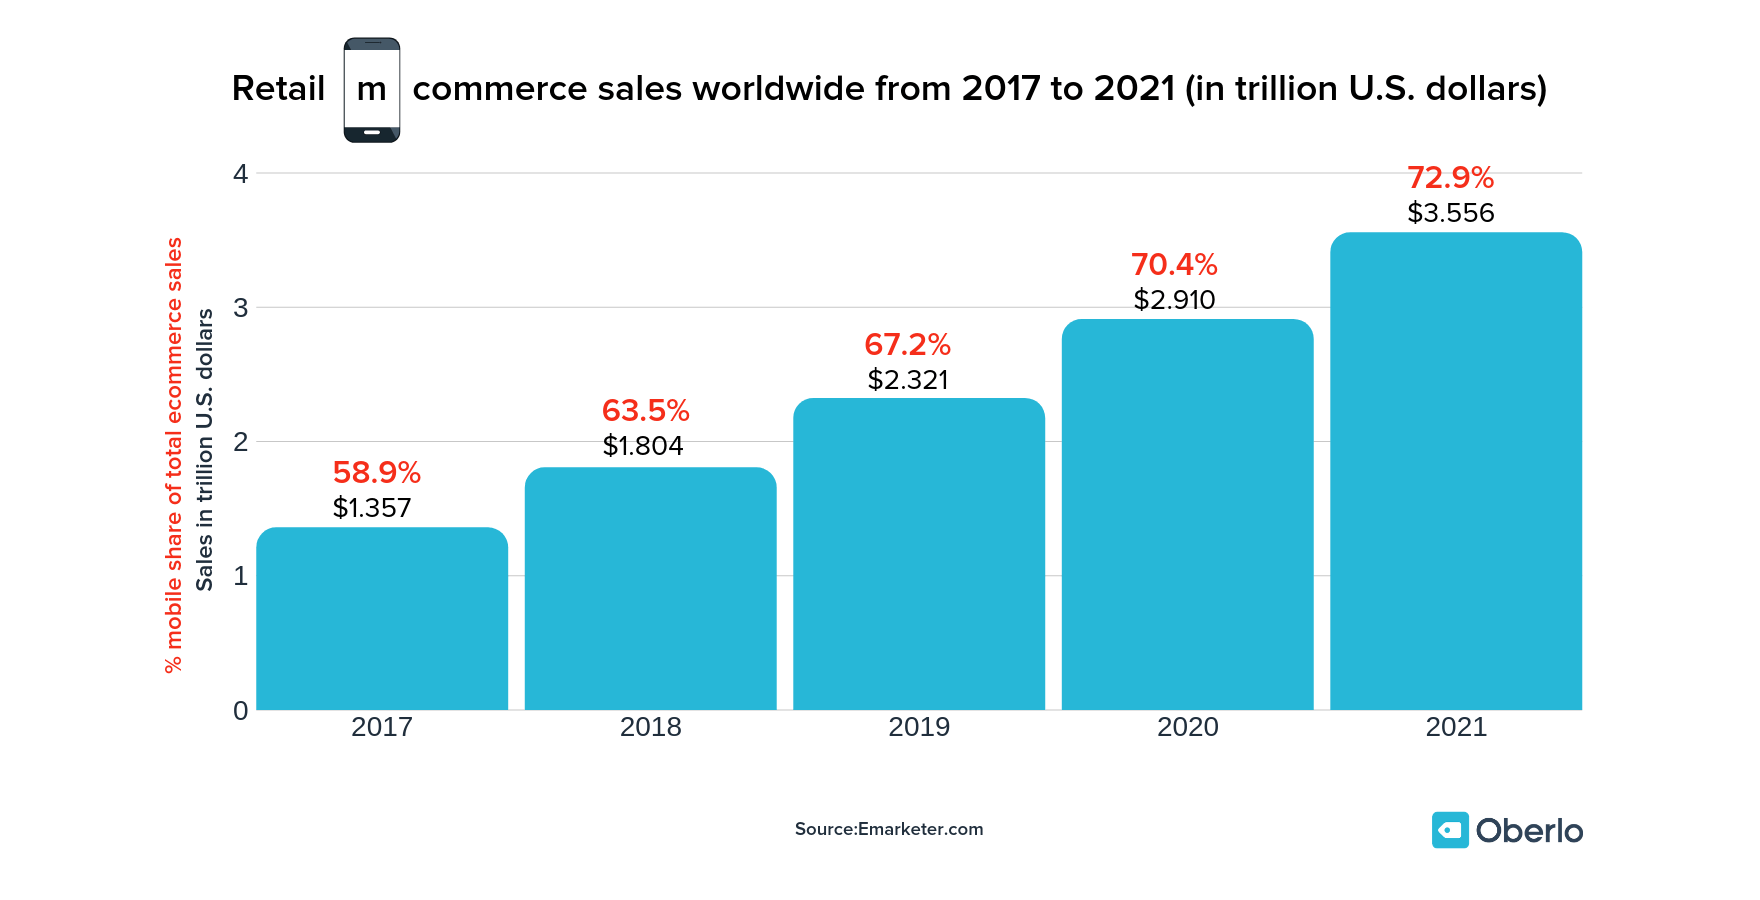 Worldwide retail mobile commerce sales